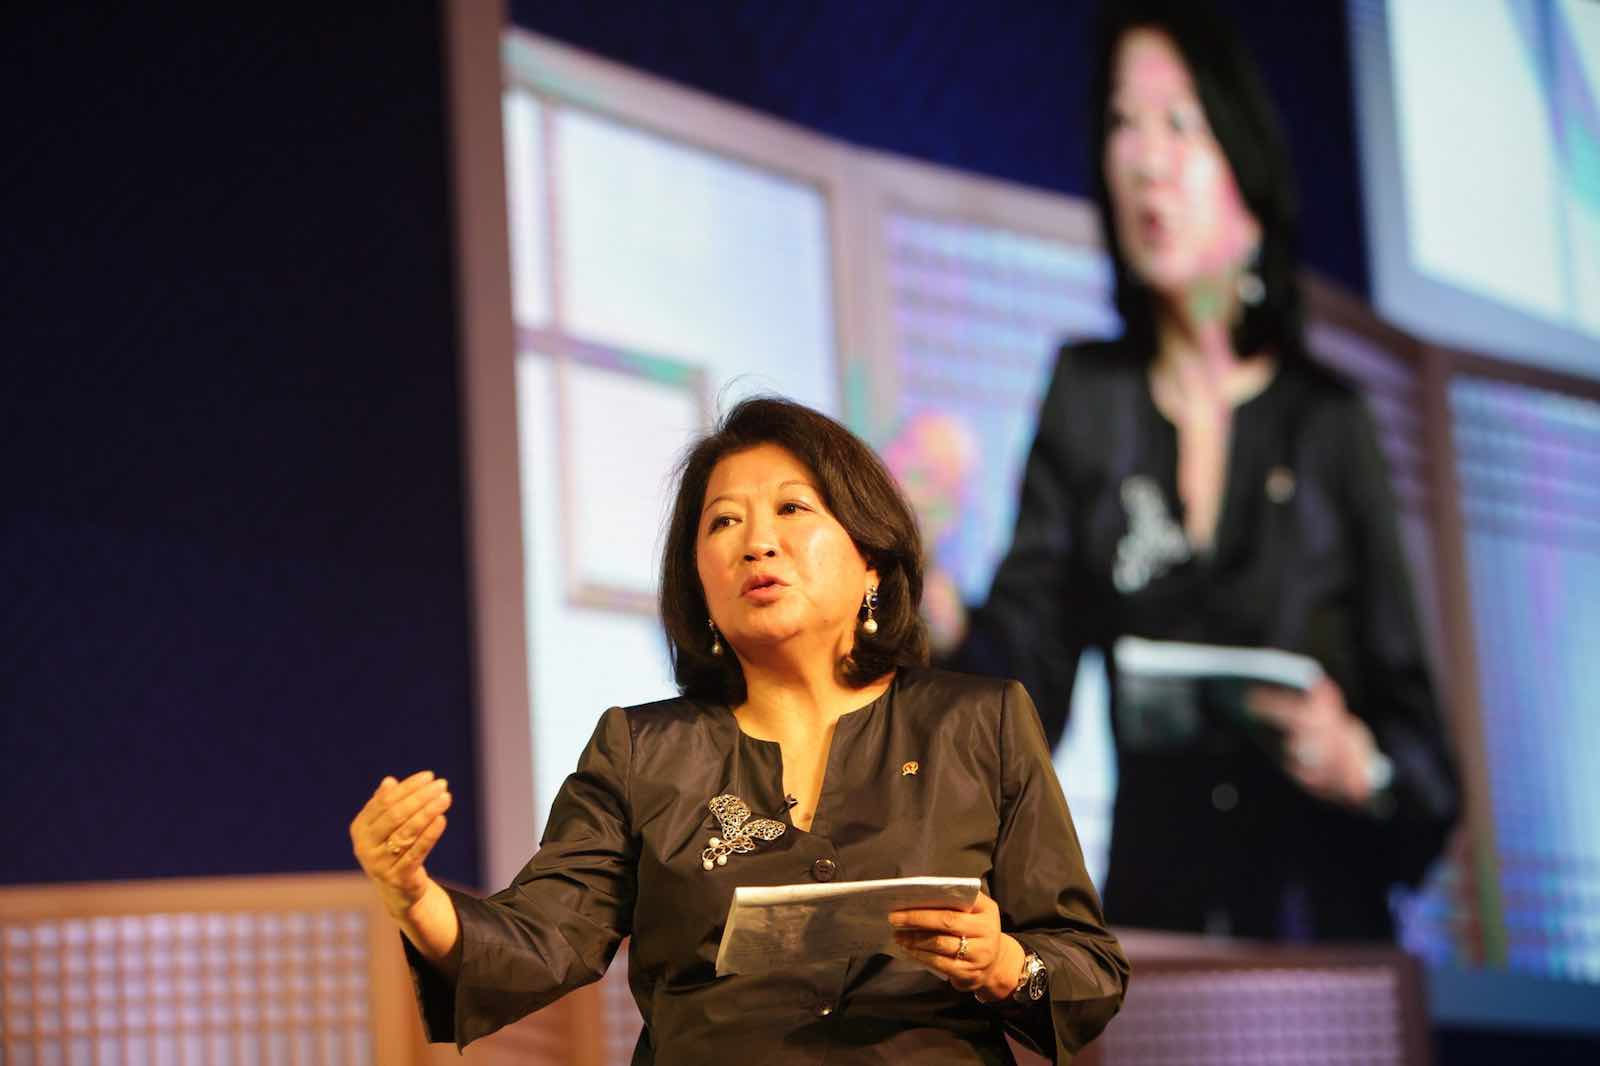 Mari Pangestu has had a remarkable career as an economic adviser and policy maker in Indonesia (Photo: World Travel & Tourism Council/Flickr)